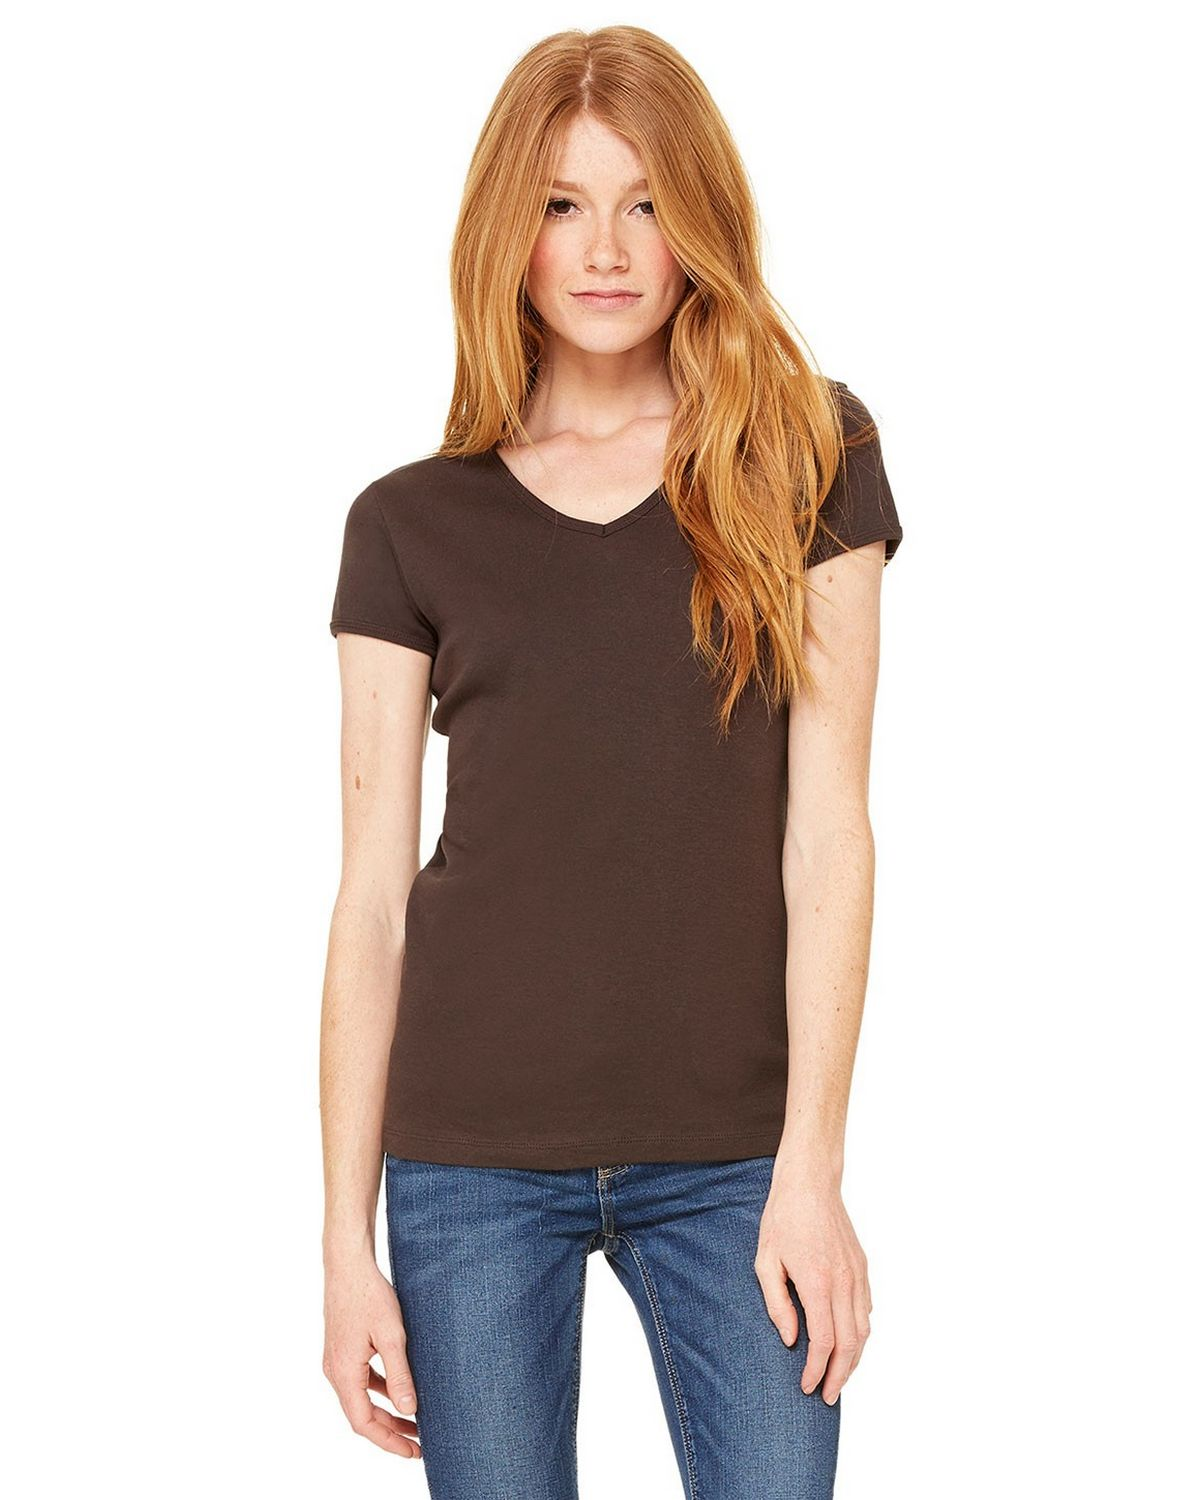 Bella + Canvas 1005 Ladies Stretch Rib V-Neck T-Shirt - Chocolate - S 1005